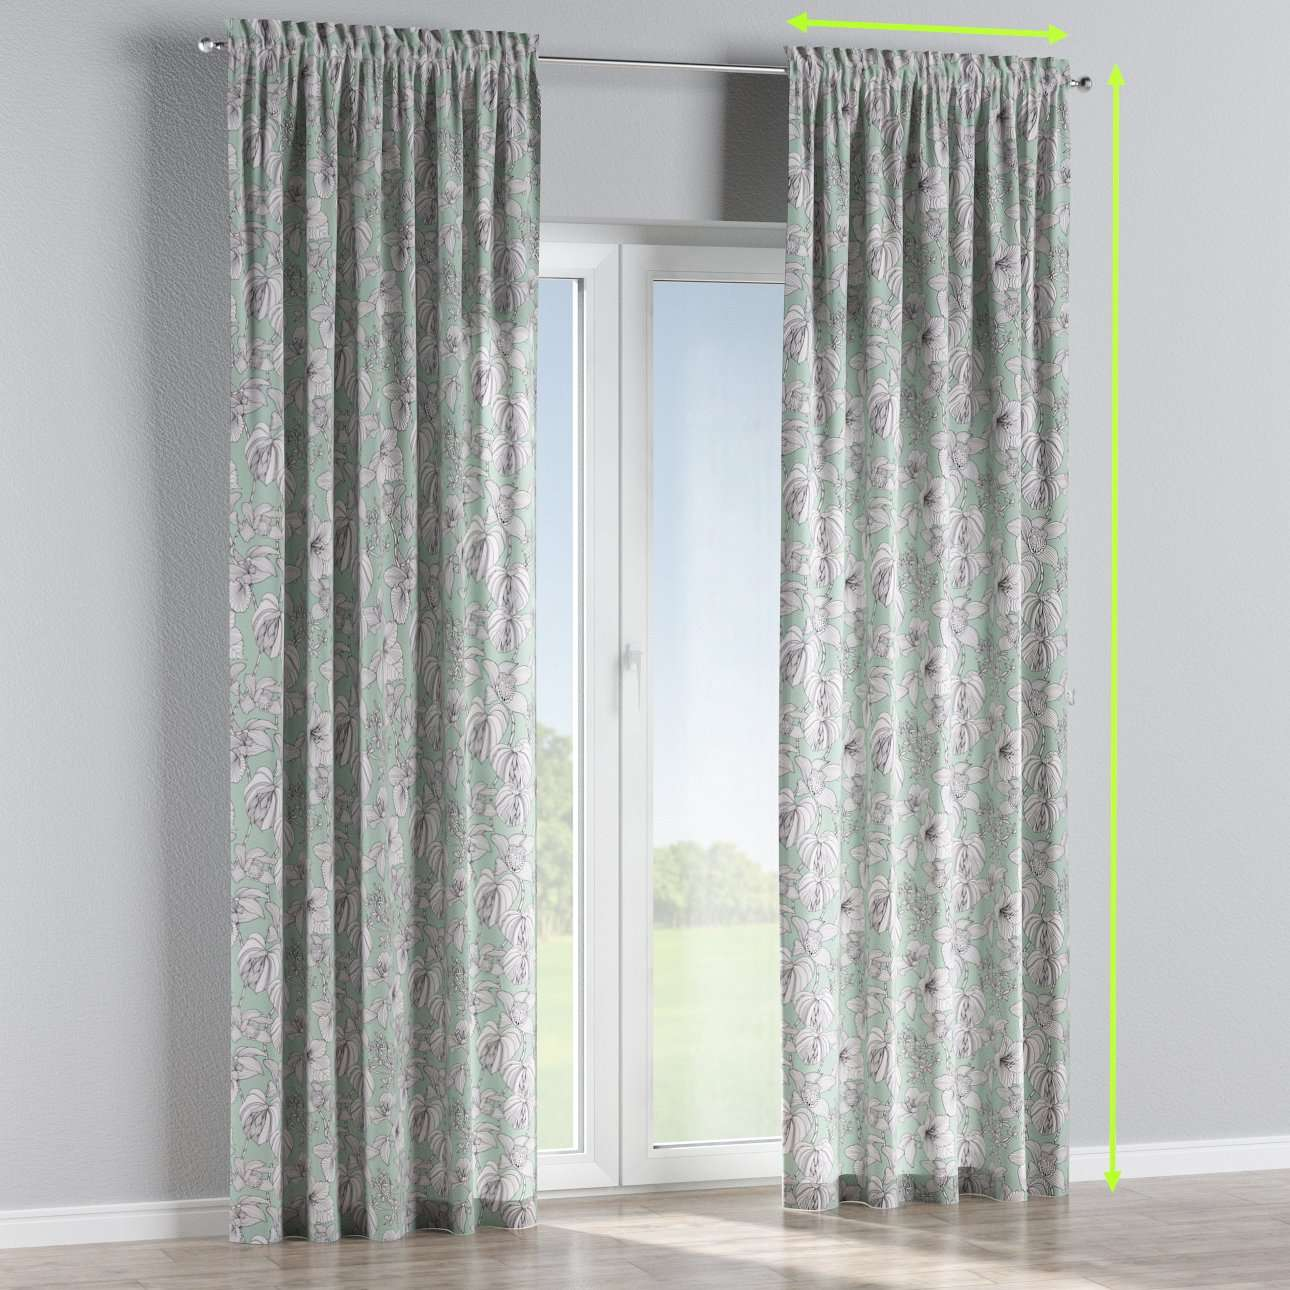 Slot and frill lined curtains in collection Brooklyn, fabric: 137-76